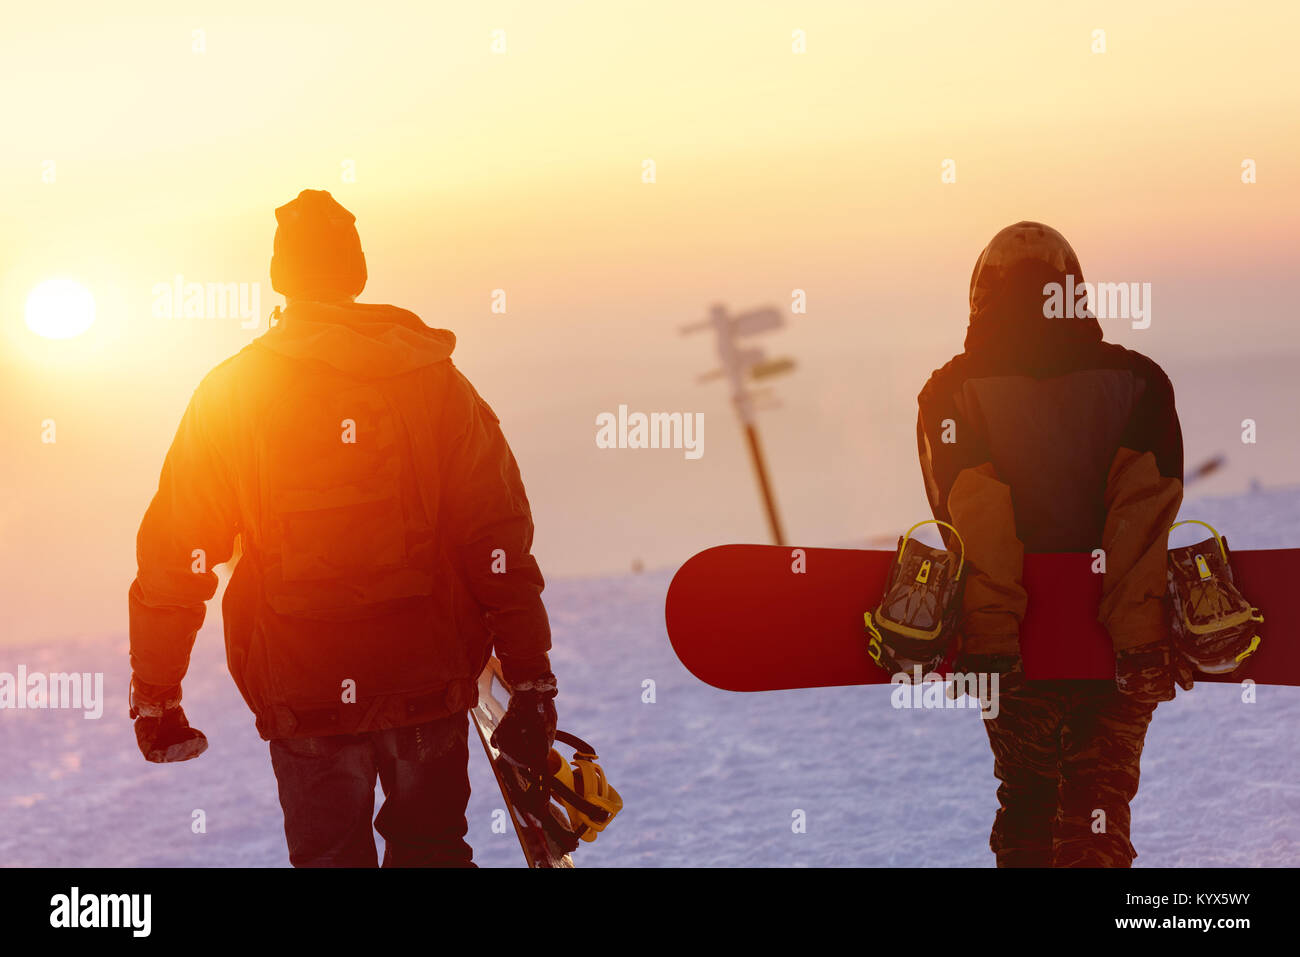 Deux snowboarders marcher contre sunset sky Photo Stock